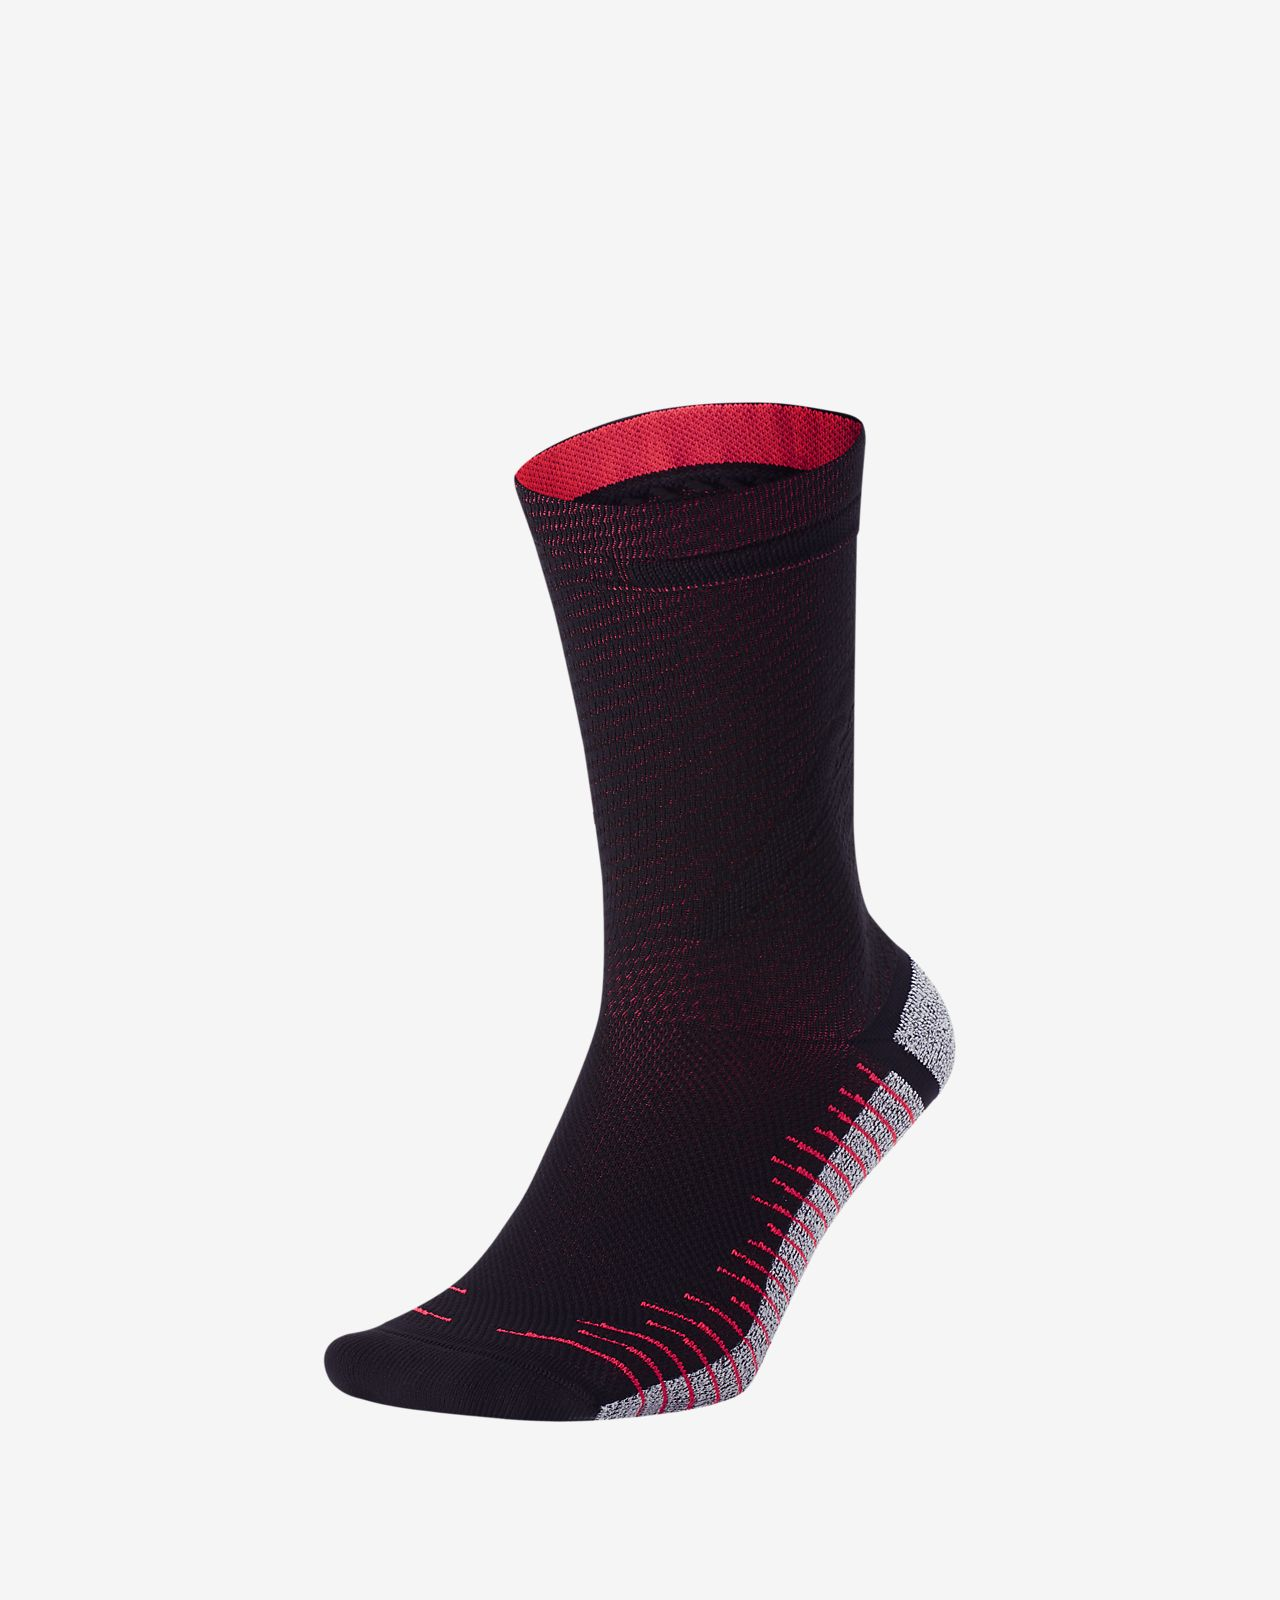 25b8050f5 NikeGrip CR7 Graphic Crew Football Socks. Nike.com AU